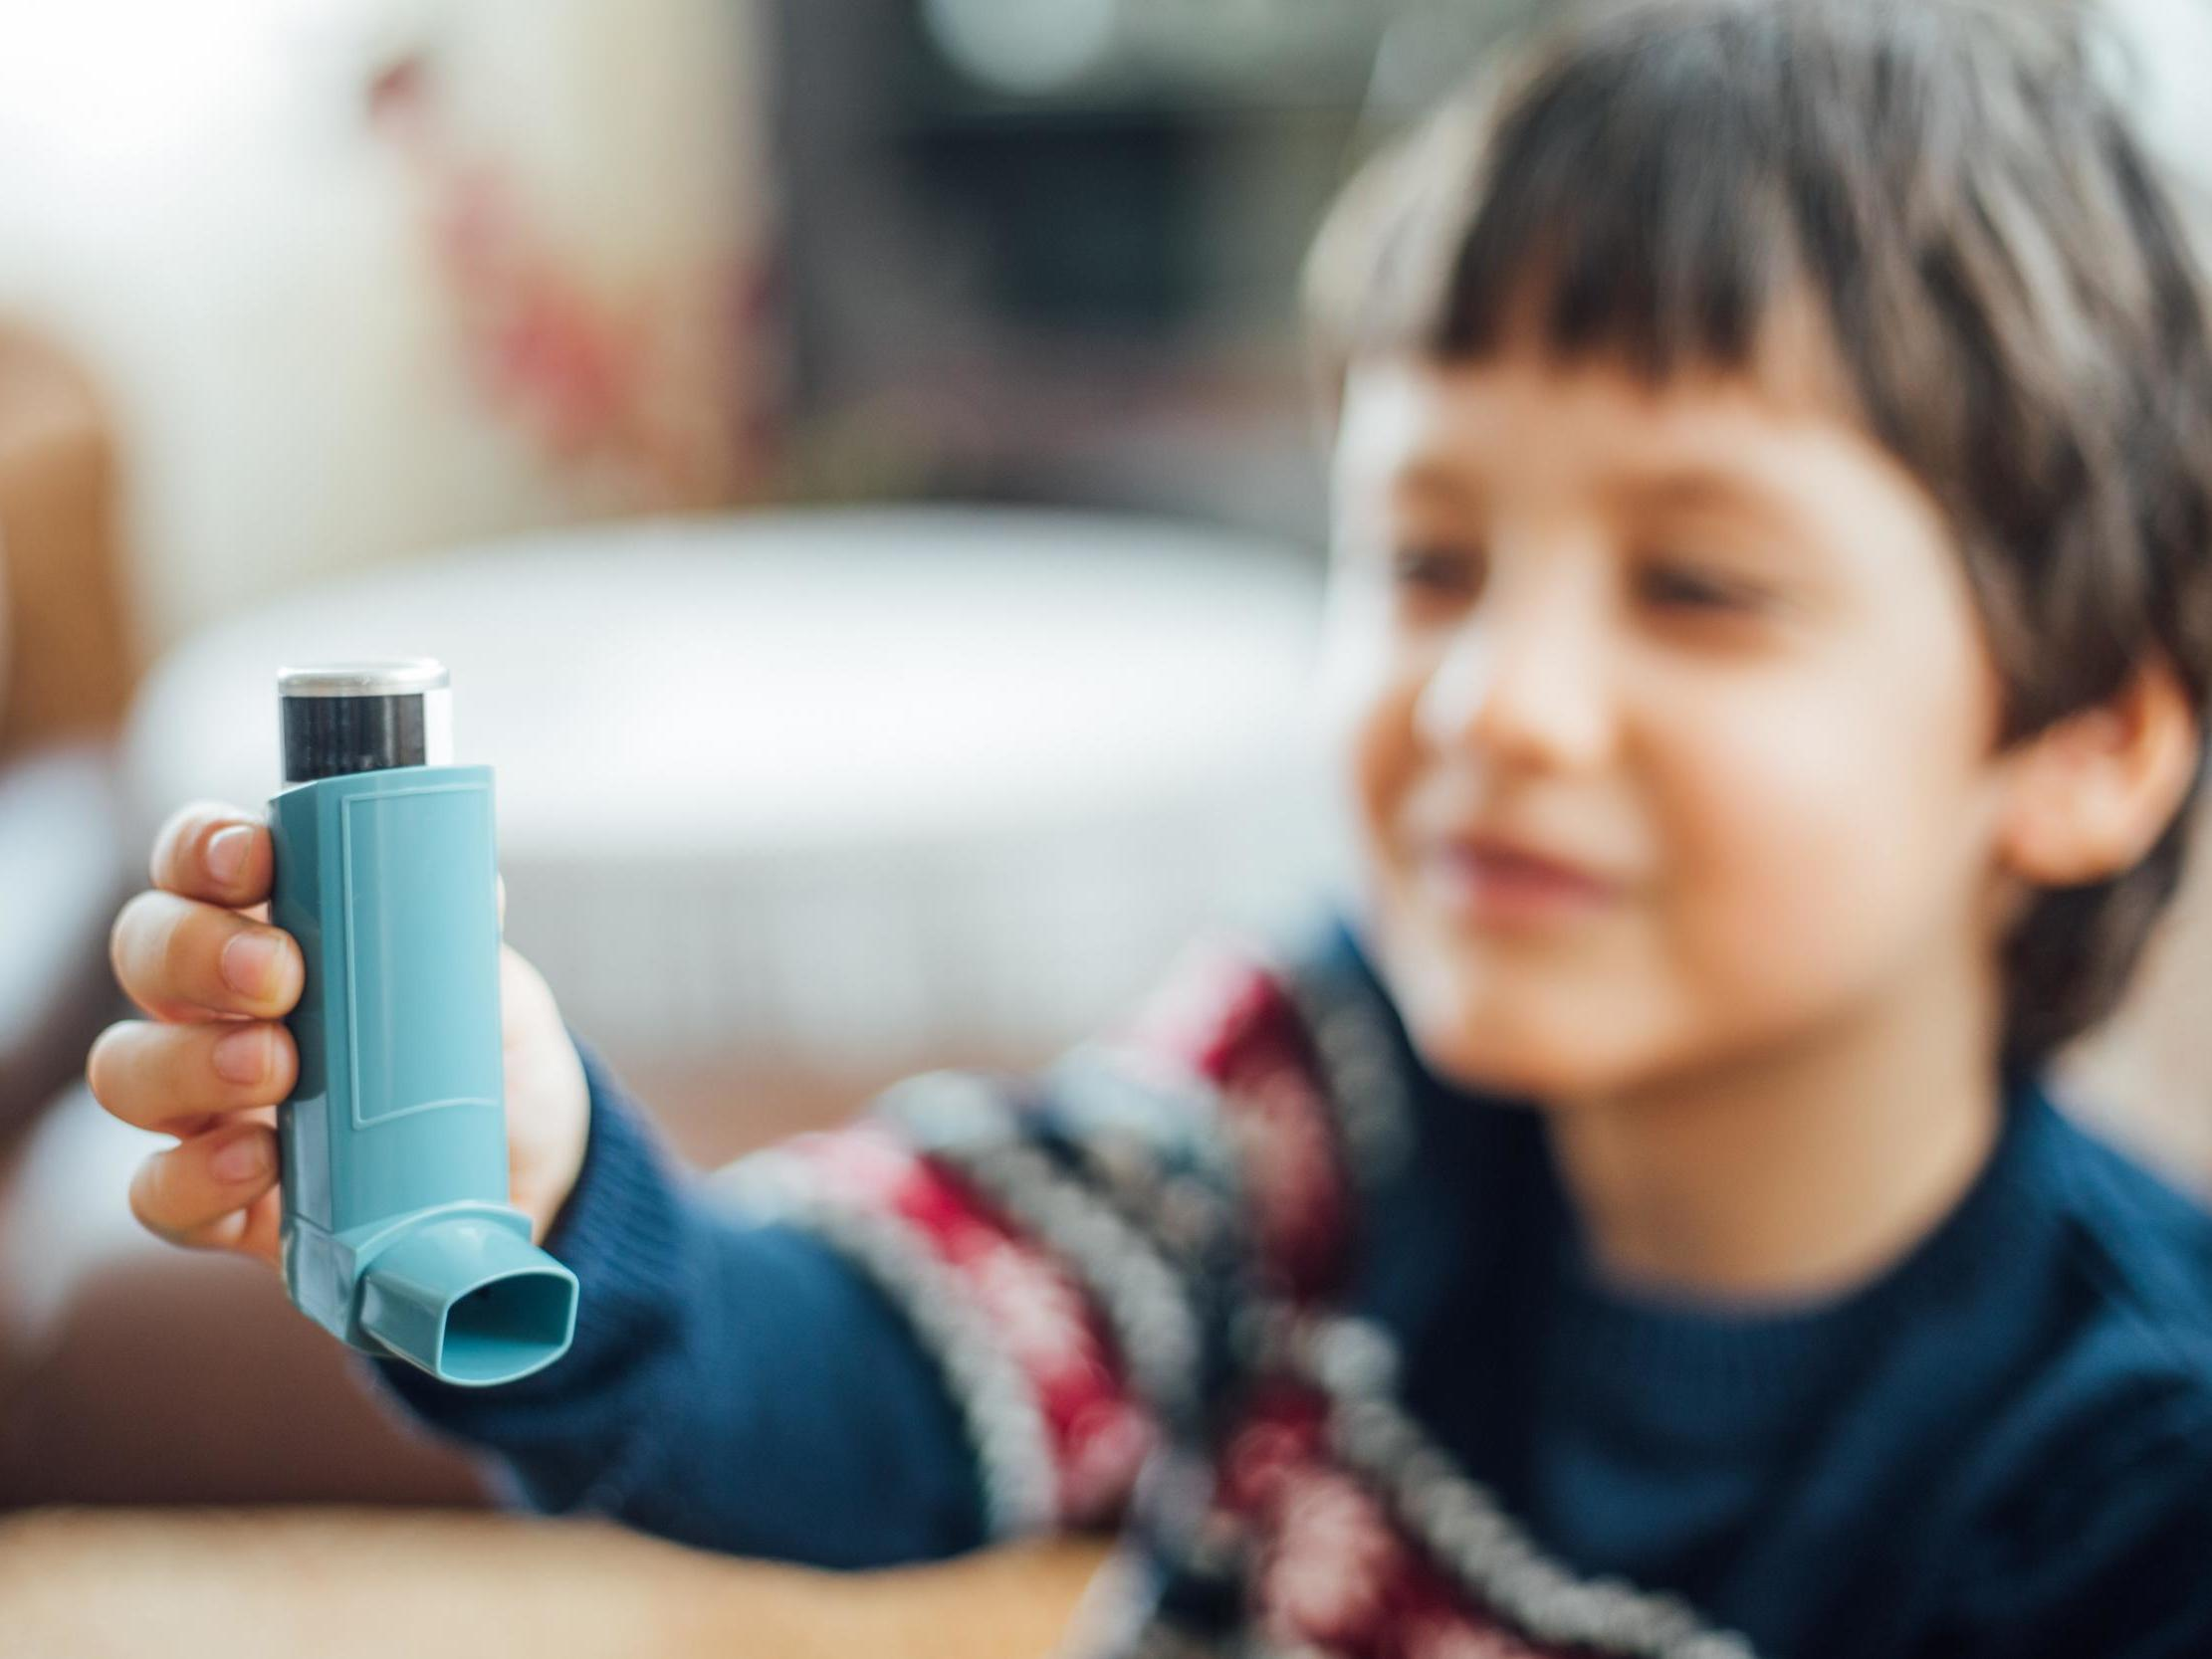 Cleaning products linked to breathing problems in children